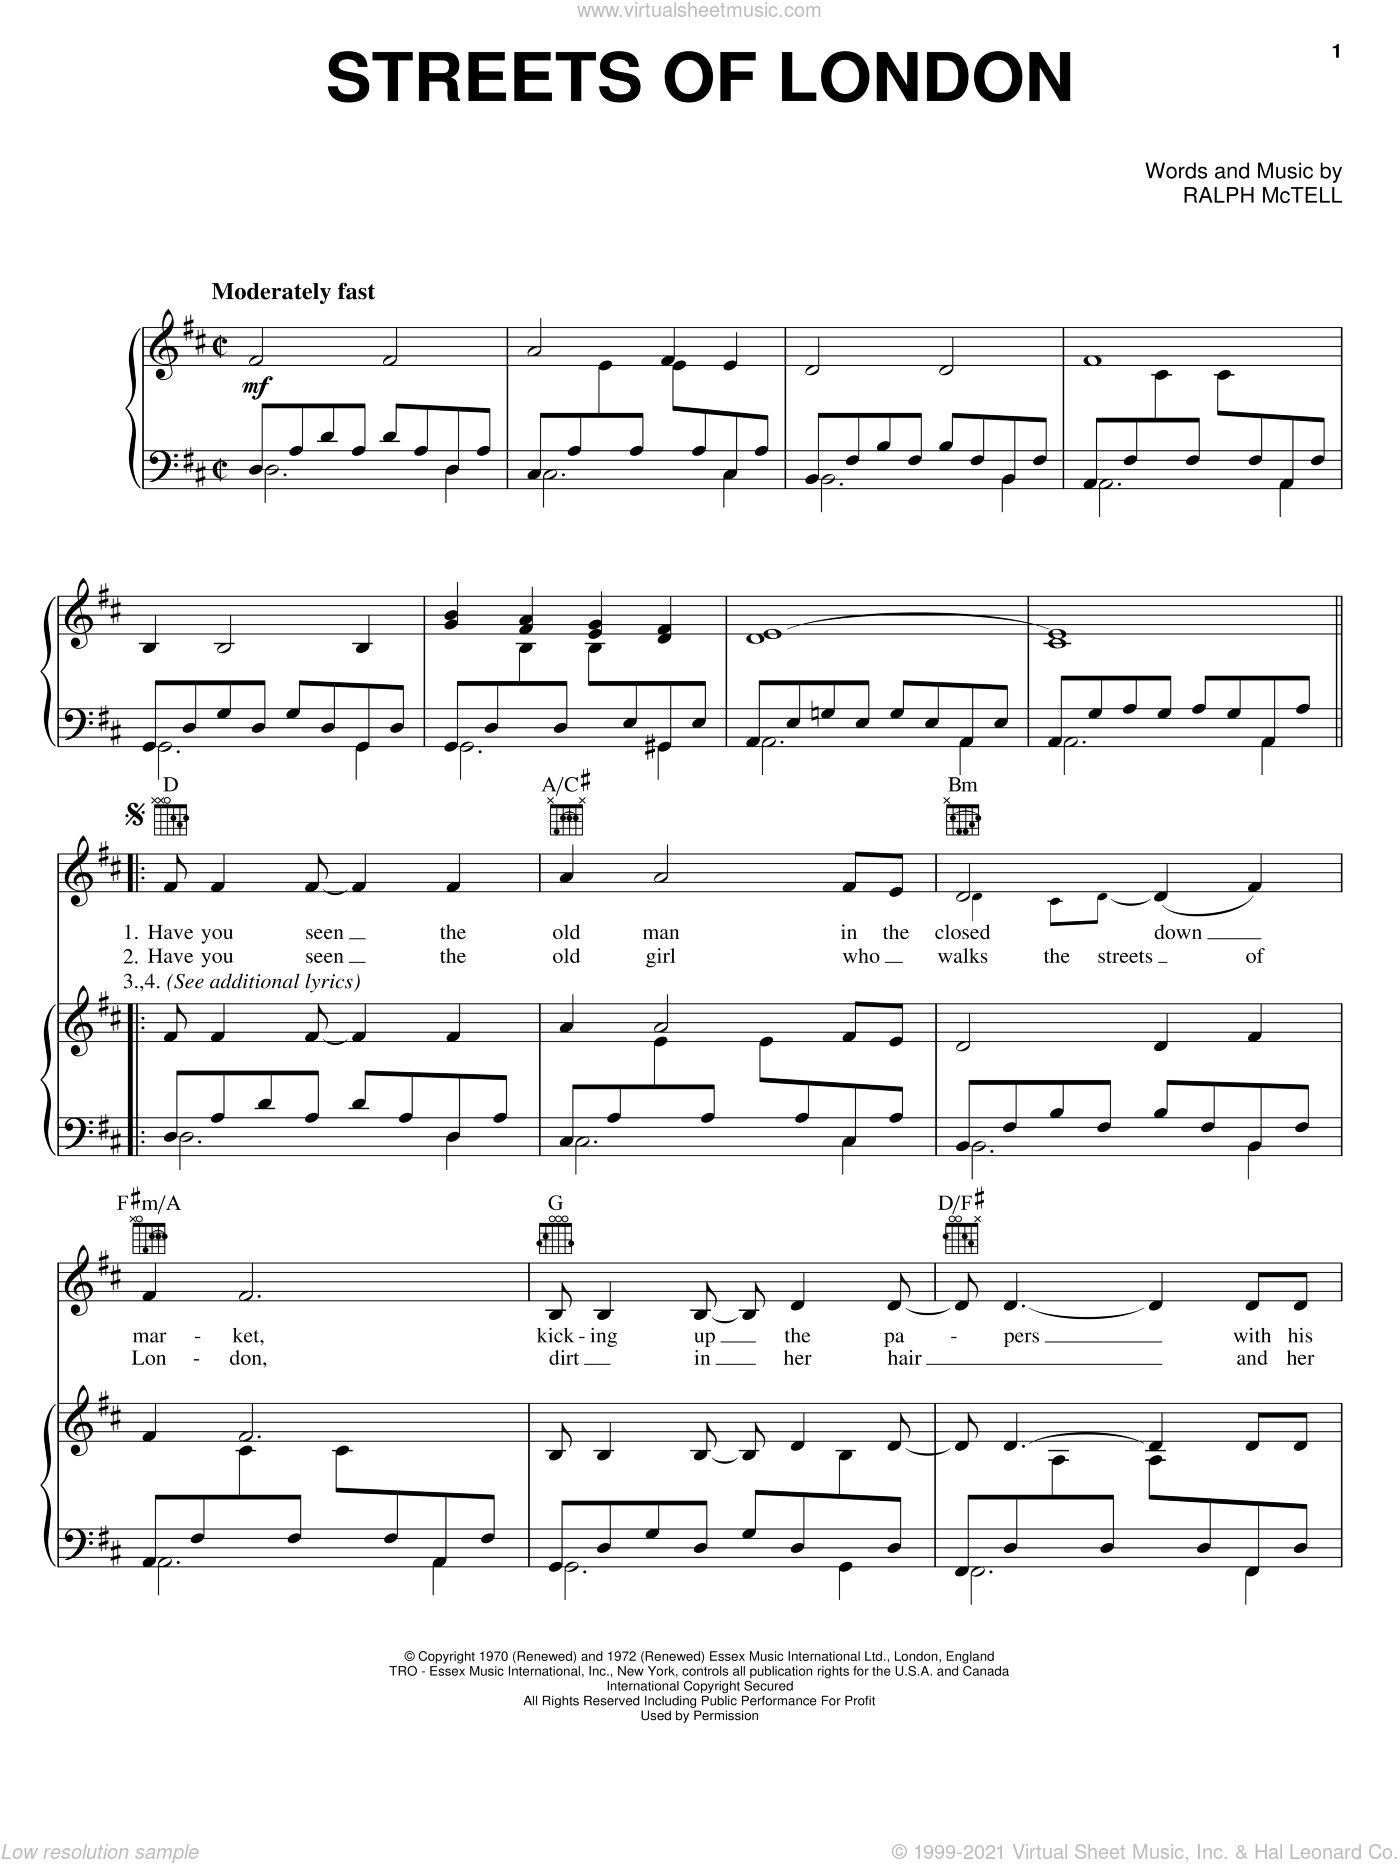 Streets Of London sheet music for voice, piano or guitar by Ralph McTell, intermediate skill level